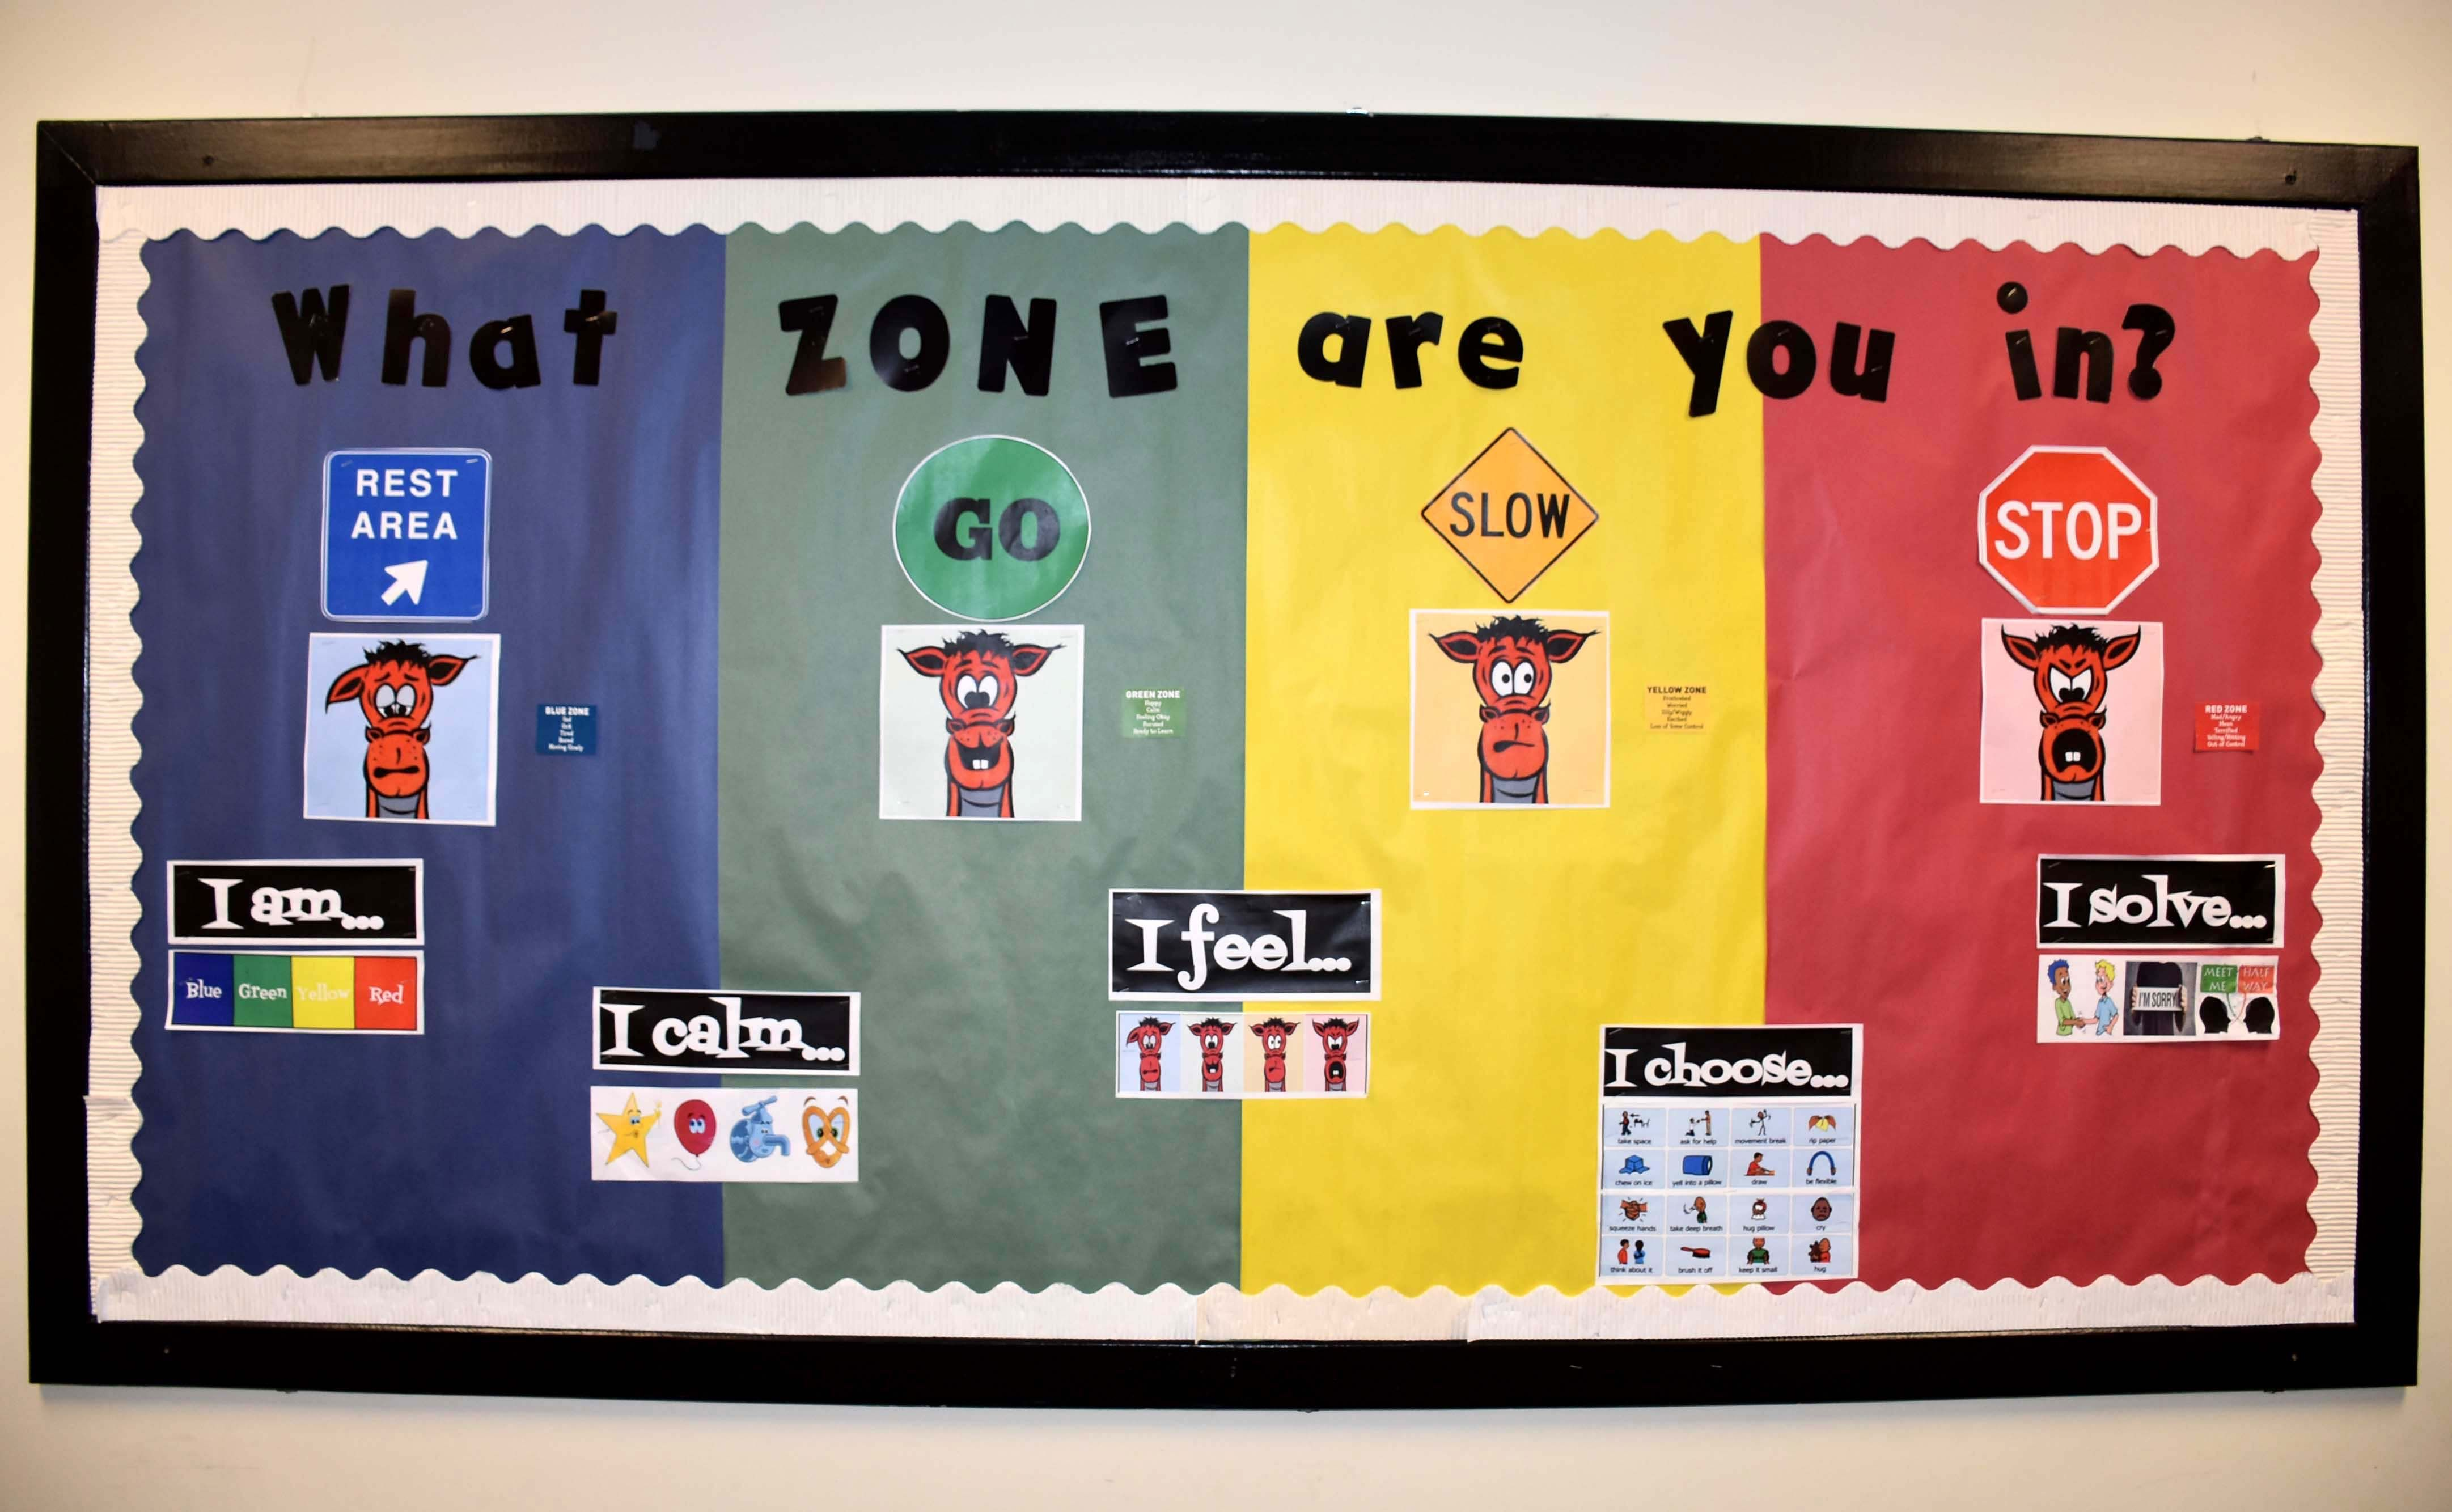 What Zone Are You In Self Regulation